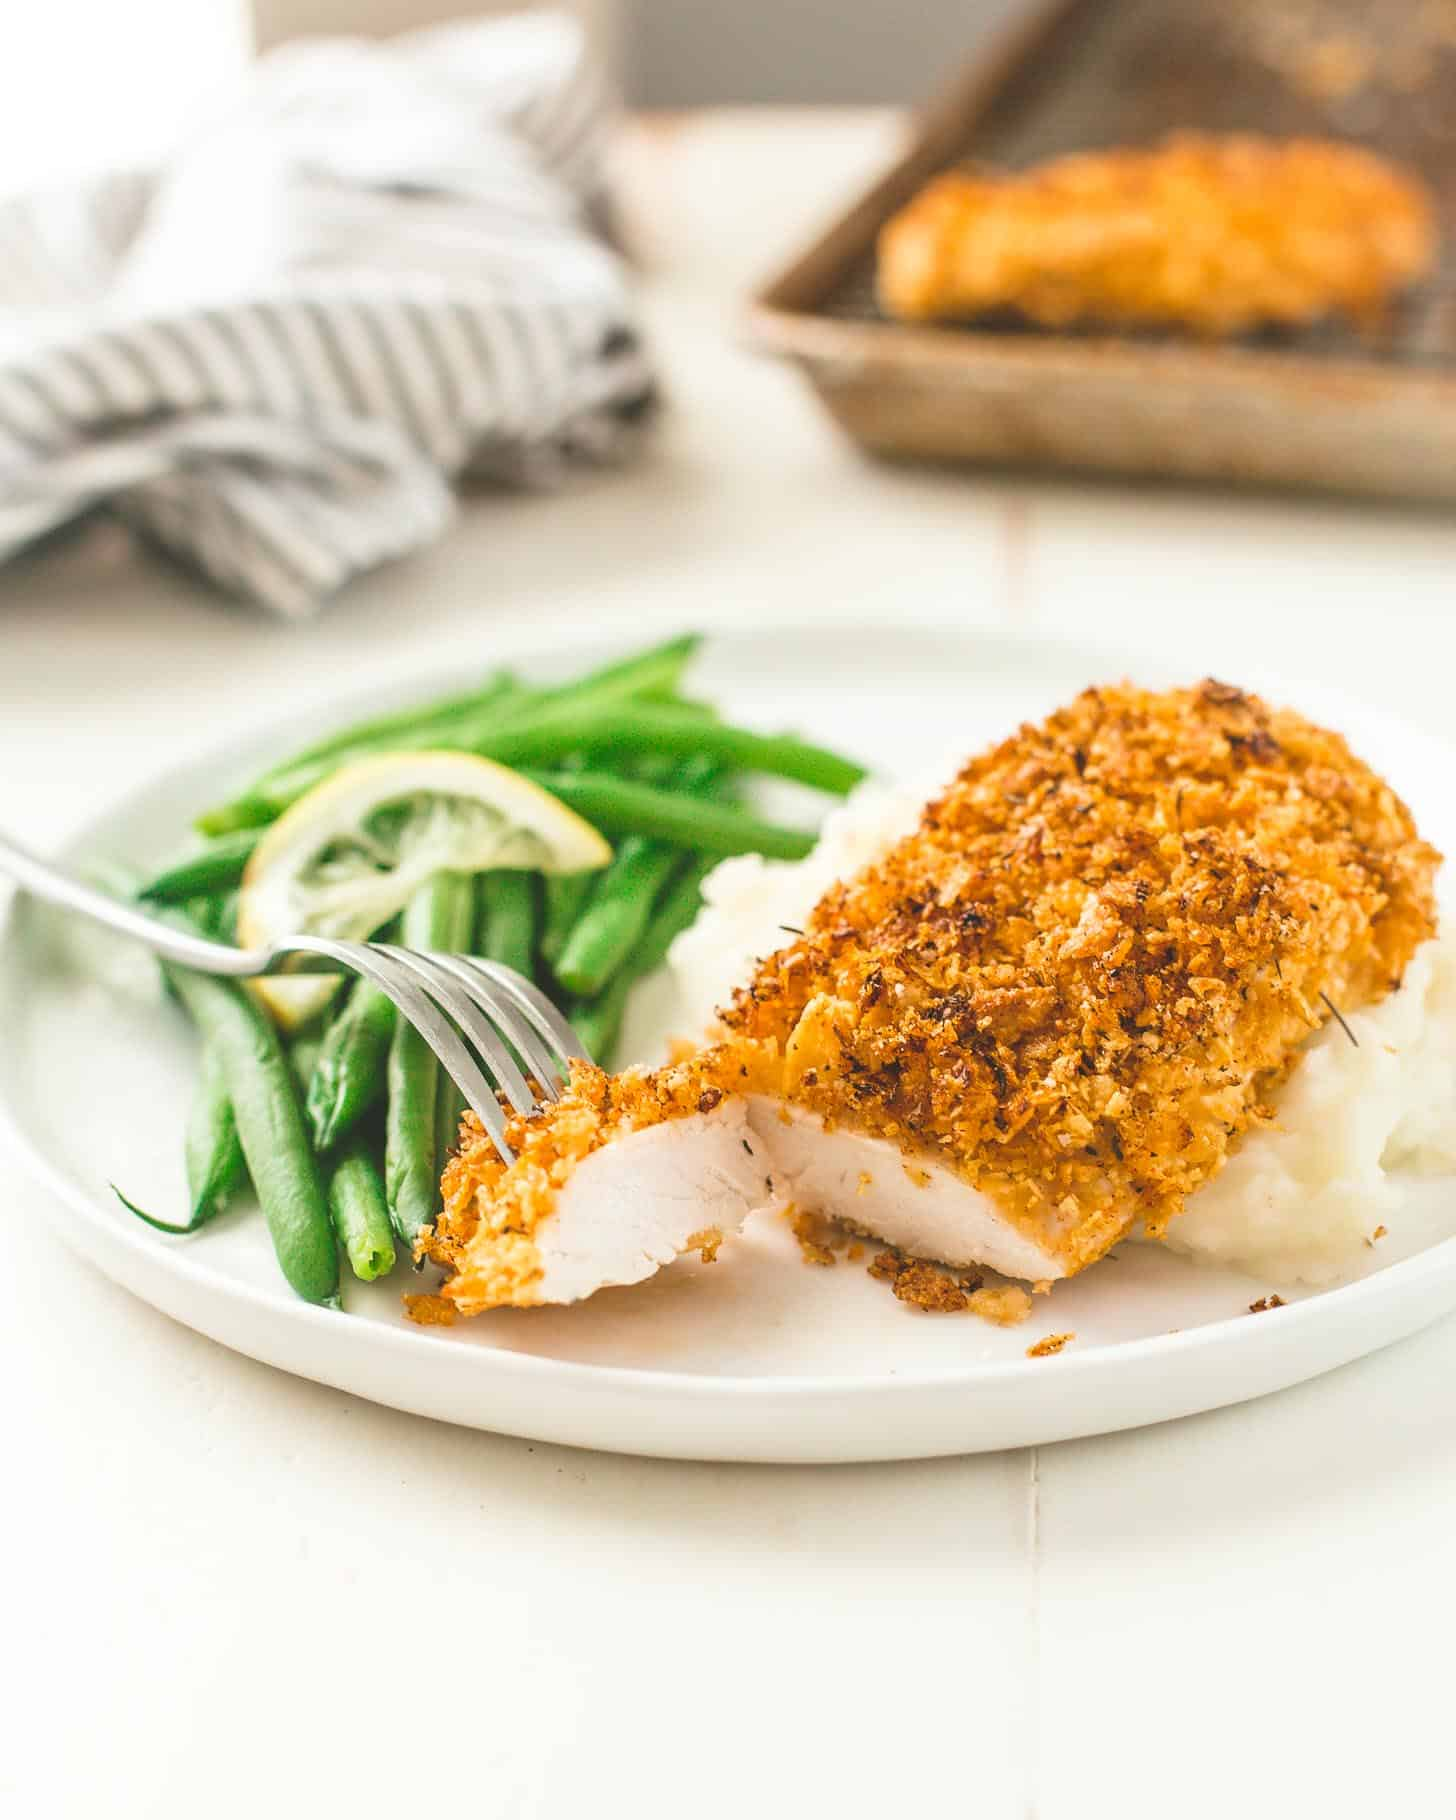 Crispy Baked Cornflake Chicken on a white plate with green beans and mashed potatoes